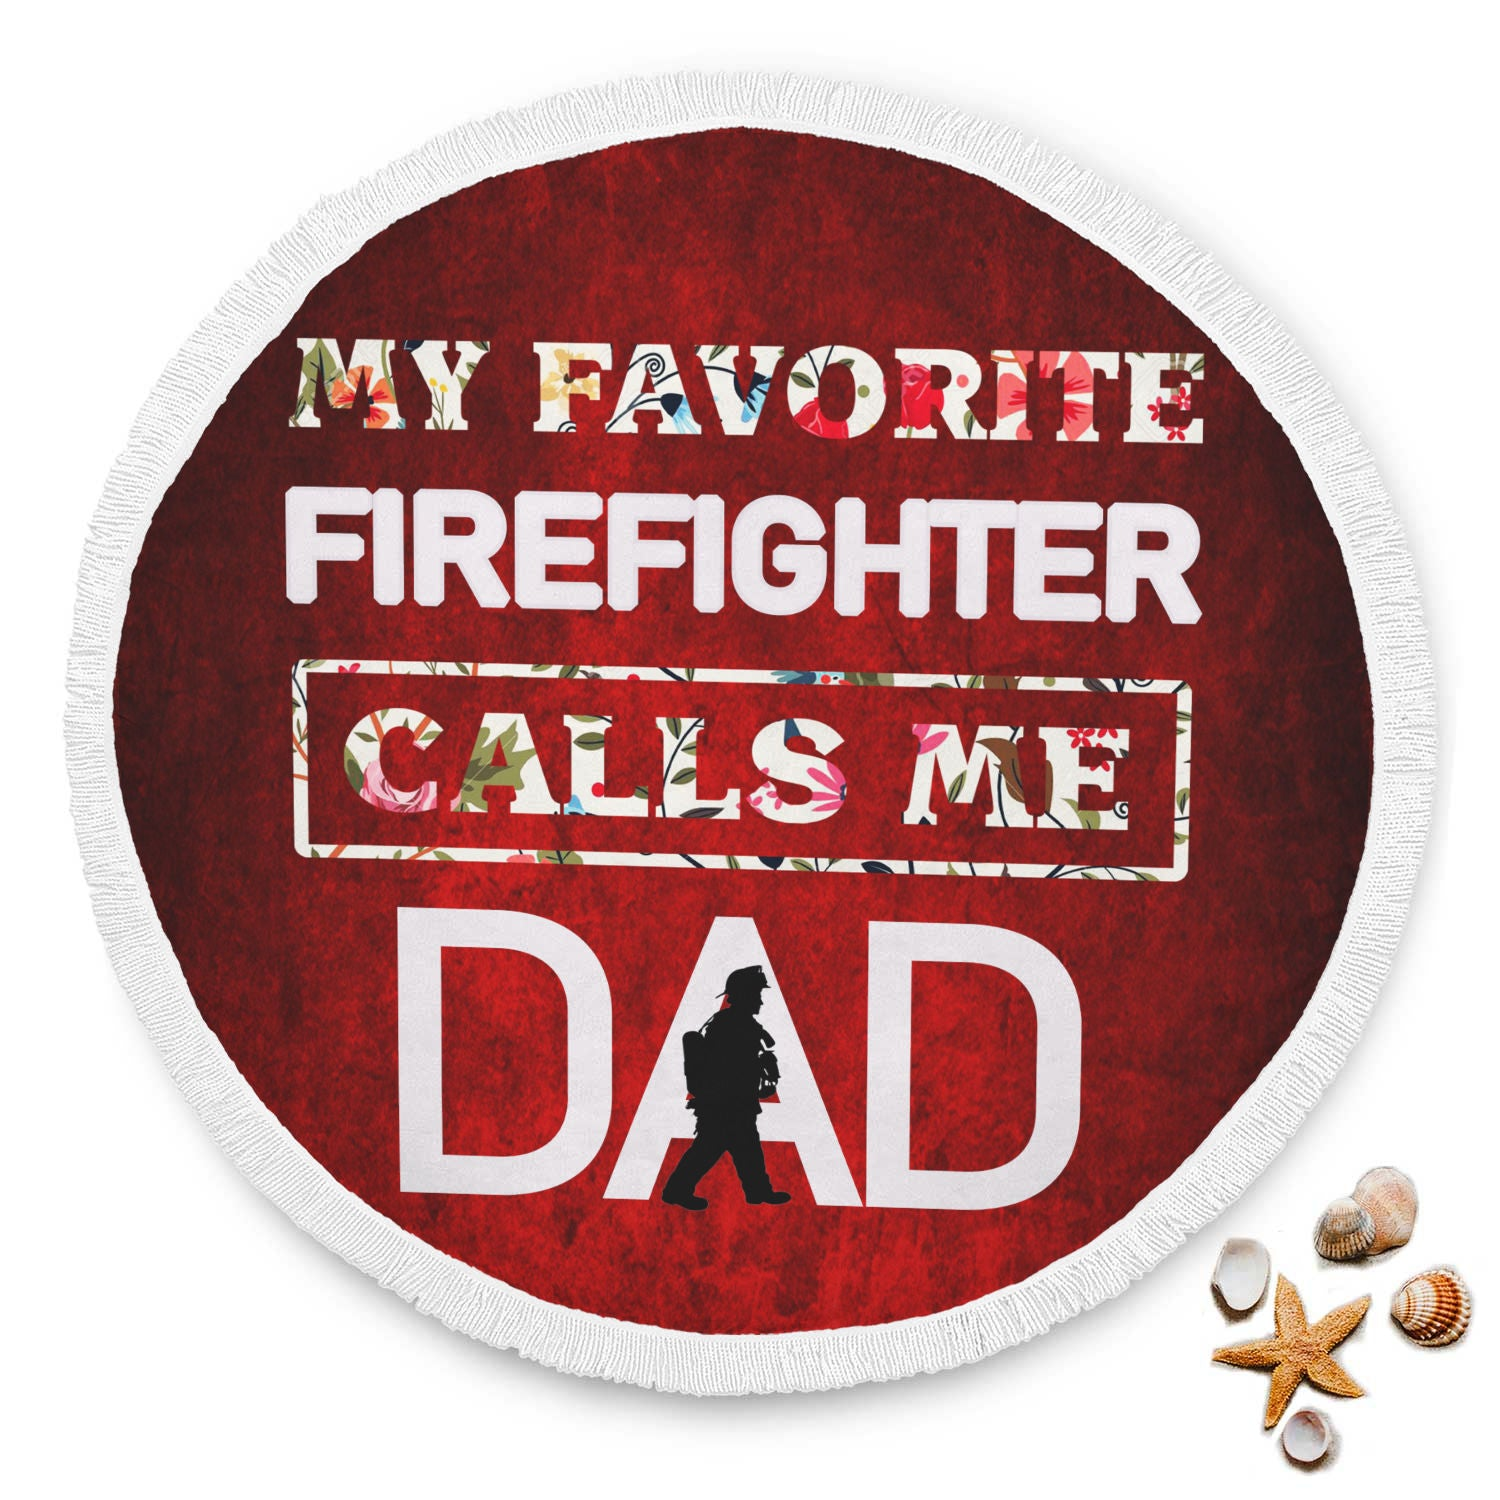 VIRA ROUND BEACH BLANKET FOR FIREFIGHTER dad THIS SUMMER